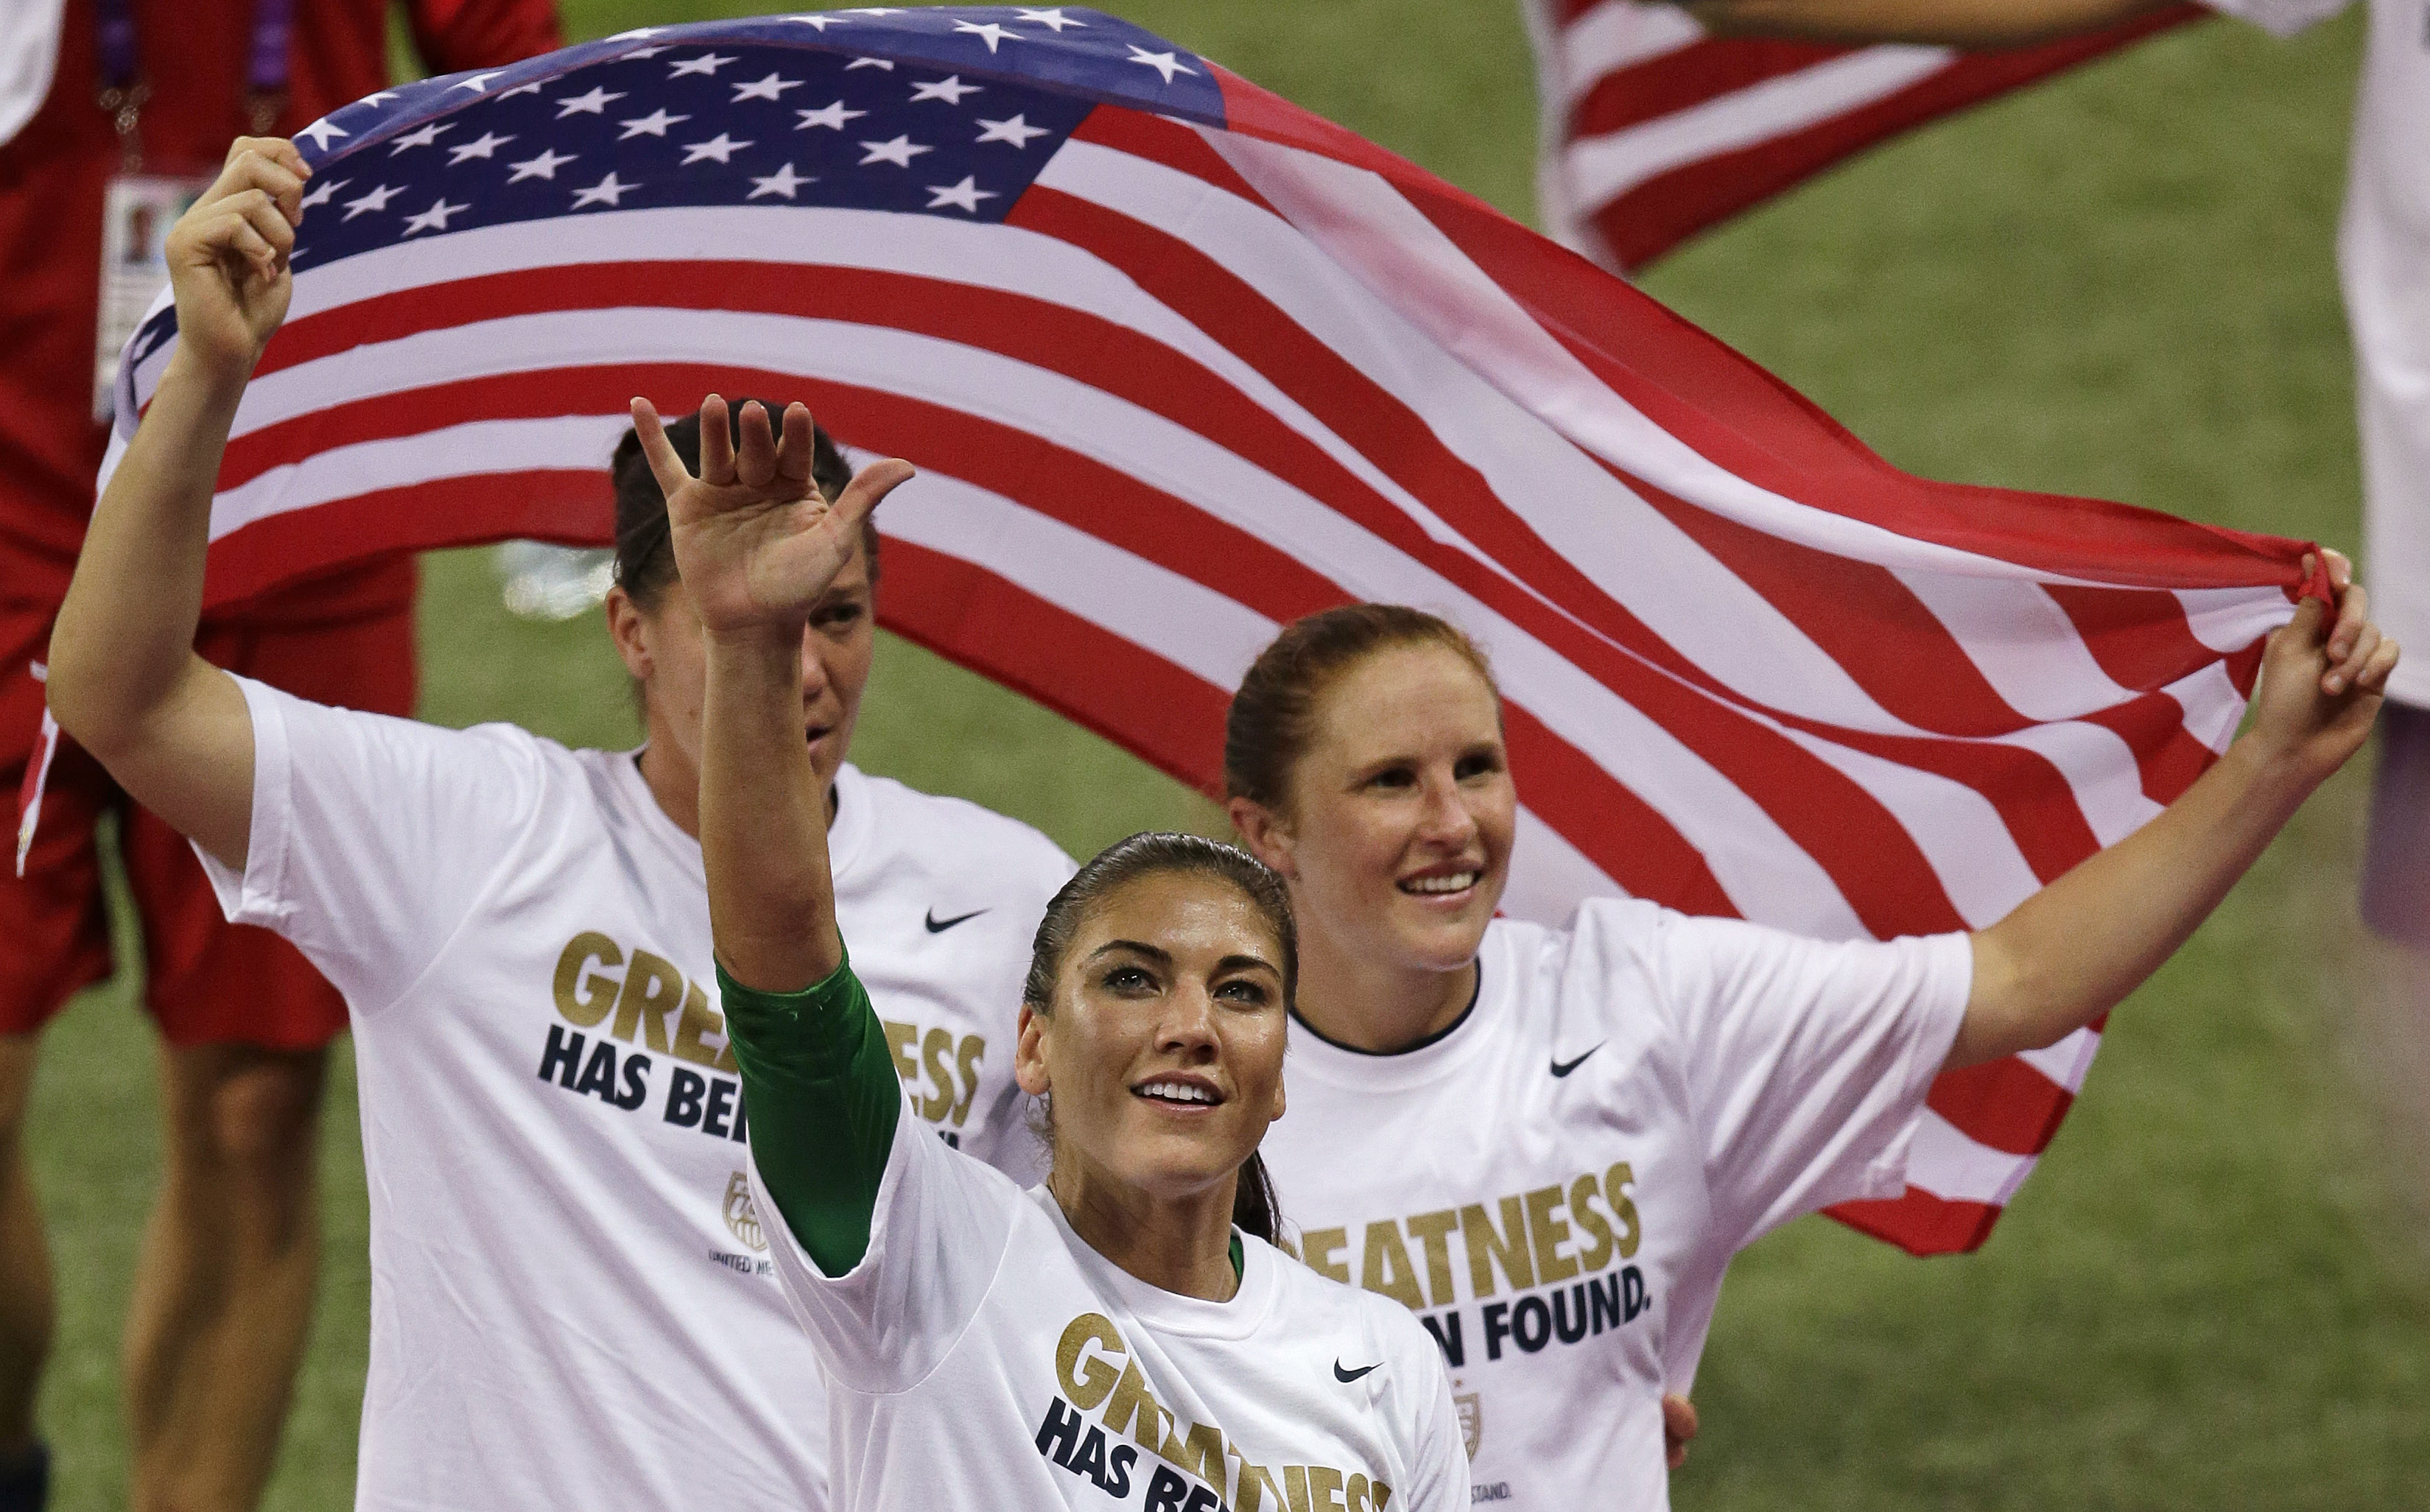 FILE - This Aug. 9, 2012 file photo shows United States goalkeeper Hope Solo celebrating with teammates after winning the gold medal match against Japan at the 2012 Summer Olympics in London. NBC Sports Network will air 330 hours of events during this sum